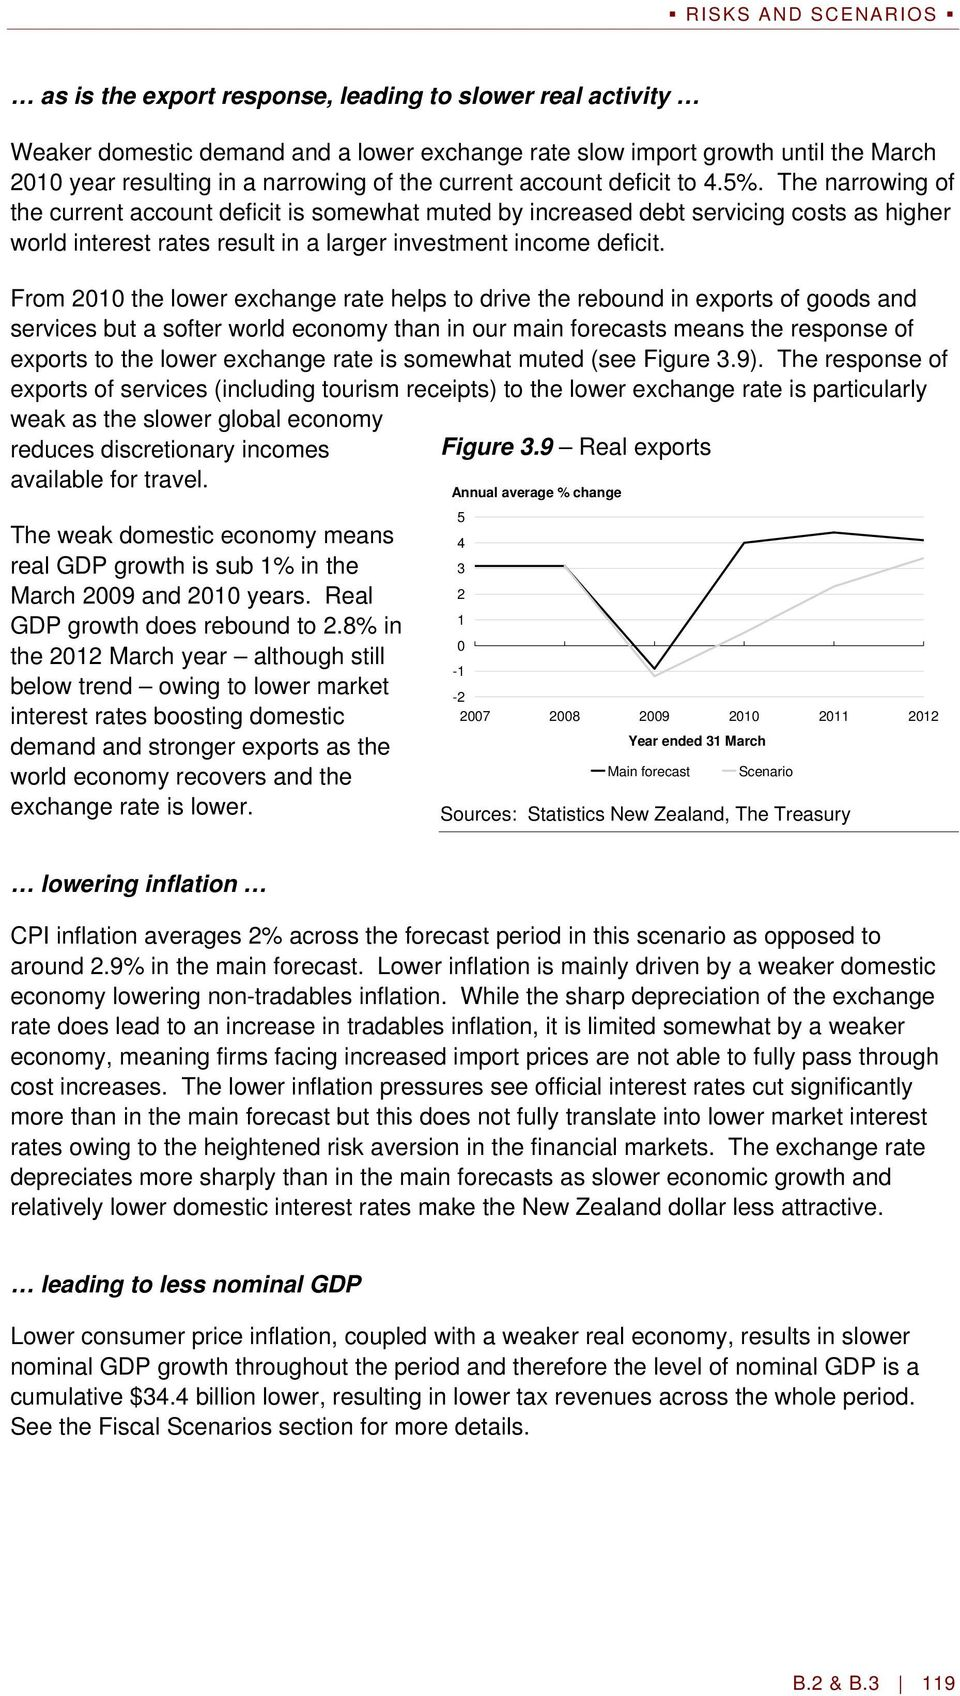 The narrowing of the current account deficit is somewhat muted by increased debt servicing costs as higher world interest rates result in a larger investment income deficit.